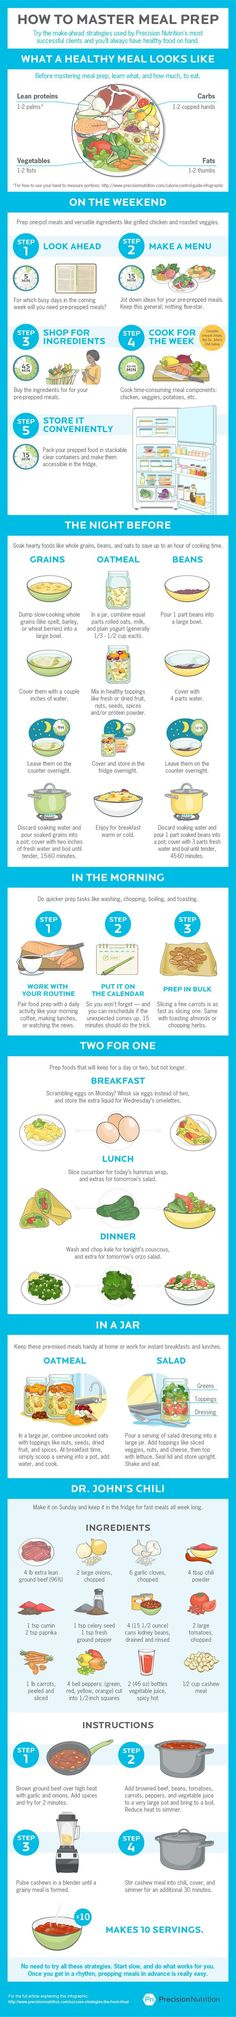 These 4 Reasons Why This Meal Plan is the Best is AWESOME! I'm so happy I found this! I've finally found a meal plan that's HEALTHY AND BUDGET FRIENDLY! Now I'll be able to spend less and eat better! Such a great money saving meal plan! Pinning for later!